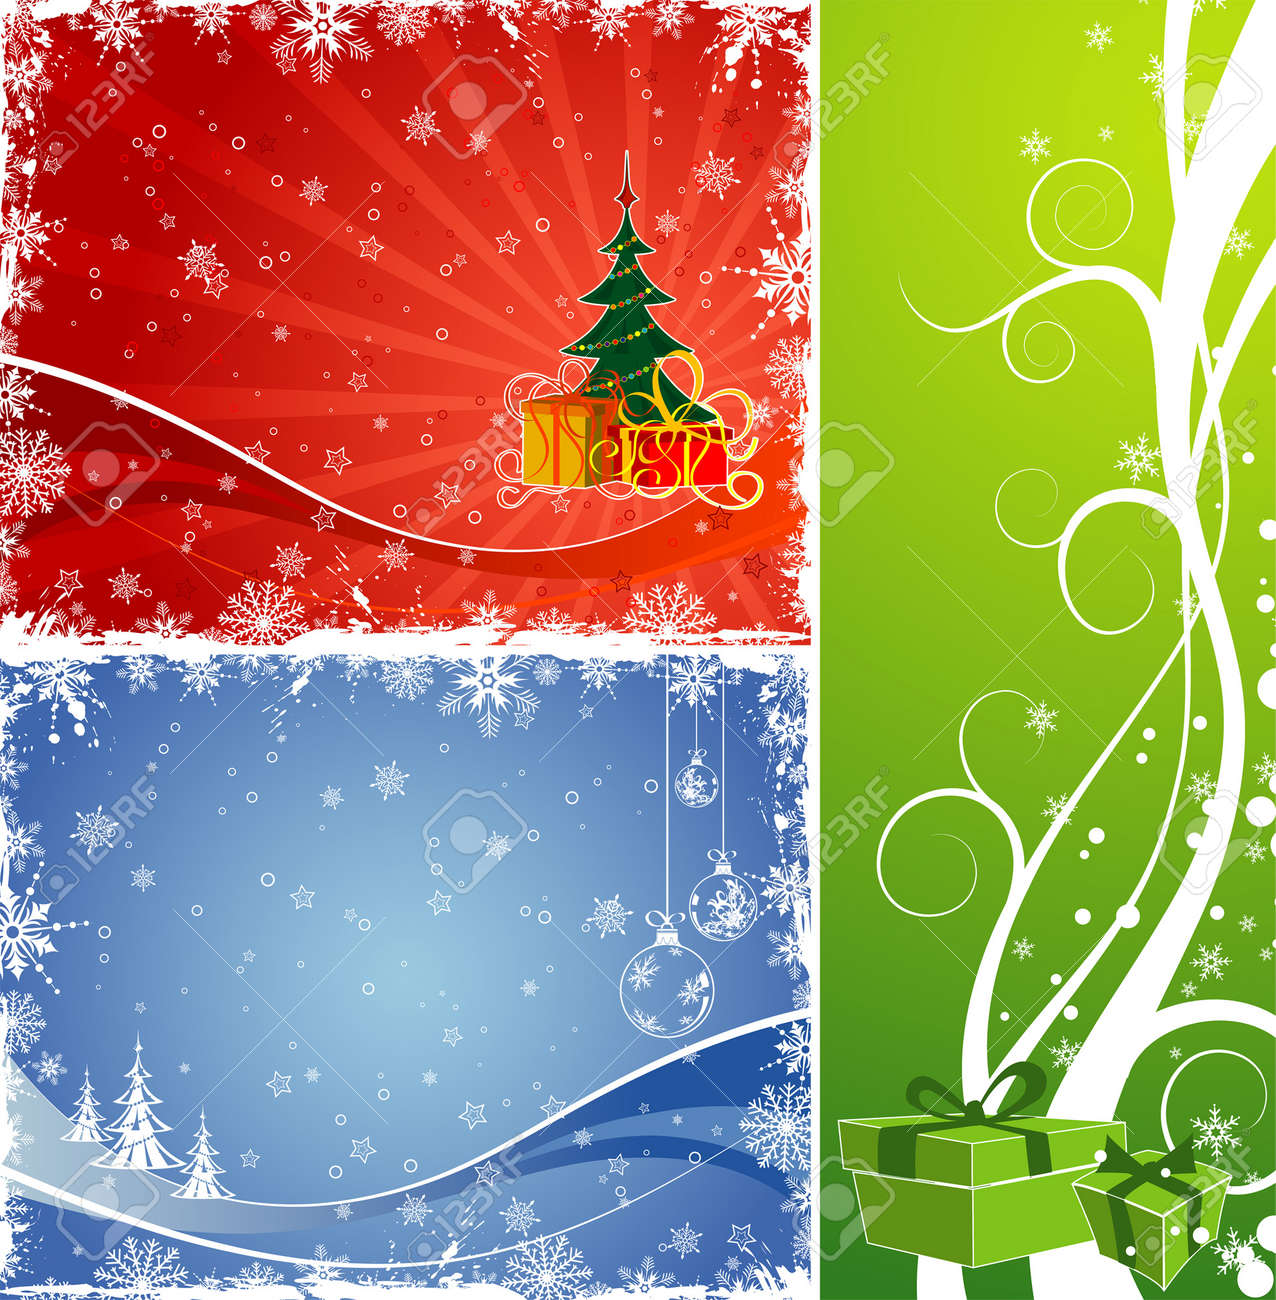 Three christmas background with gift, baubles, Christmas tree, element for design, vector illustration Stock Vector - 2225057